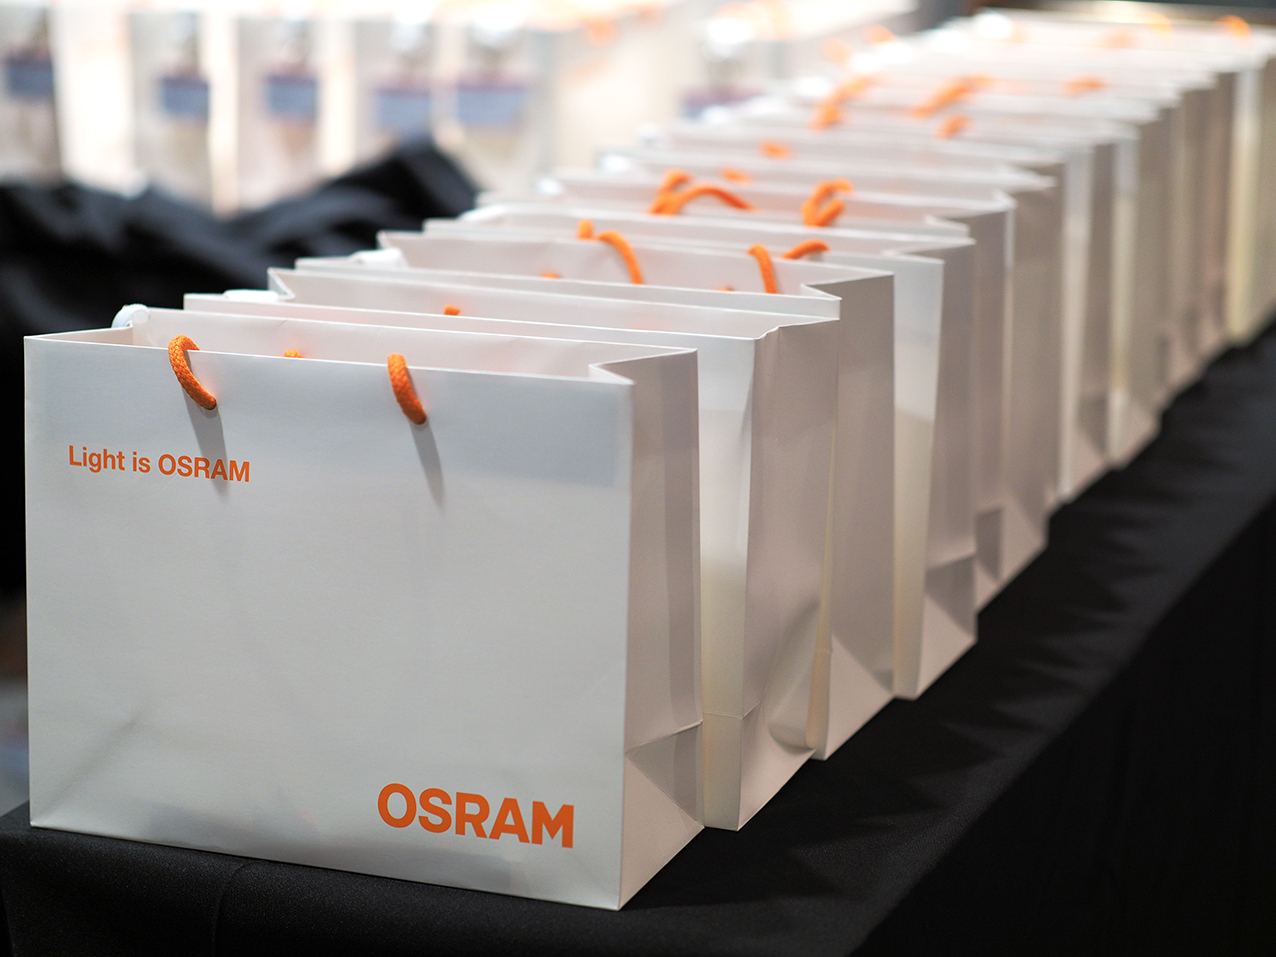 Goodie bag OSRAM Management Conference organised by Prio Event Management